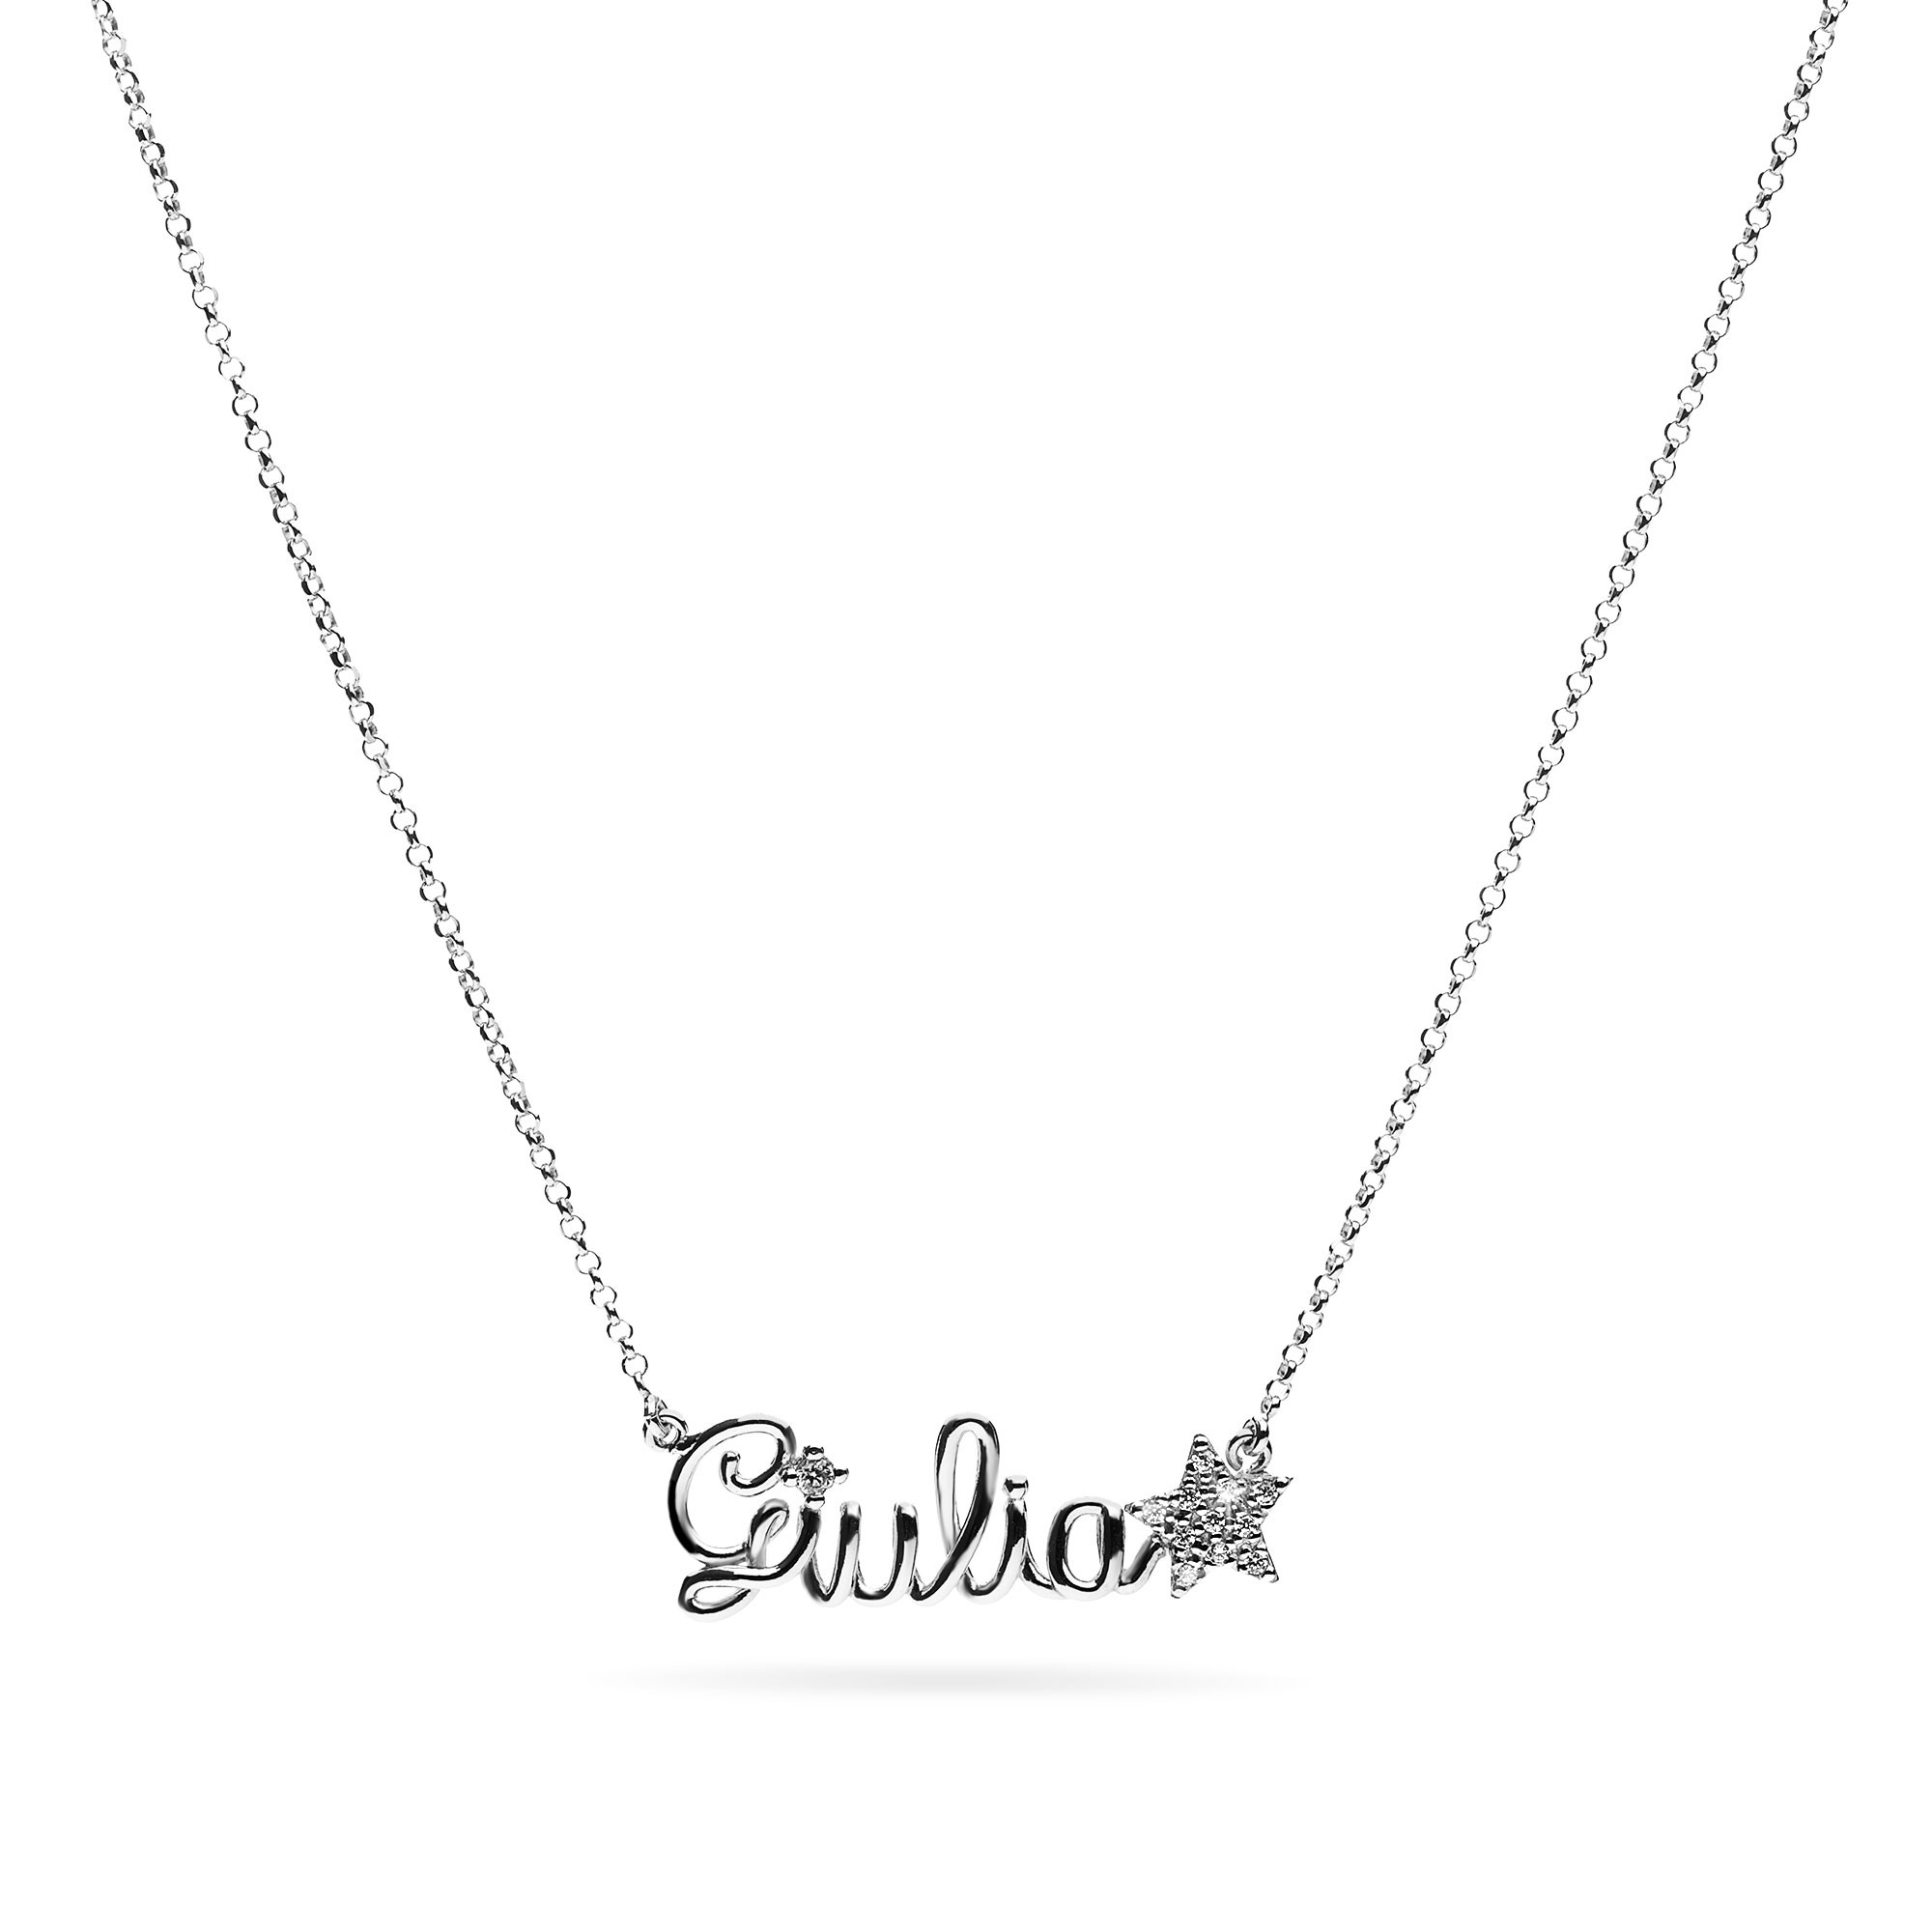 comprare on line d14e5 36fa0 Necklace with wire name in 925 silver, 18k gold plated and ...